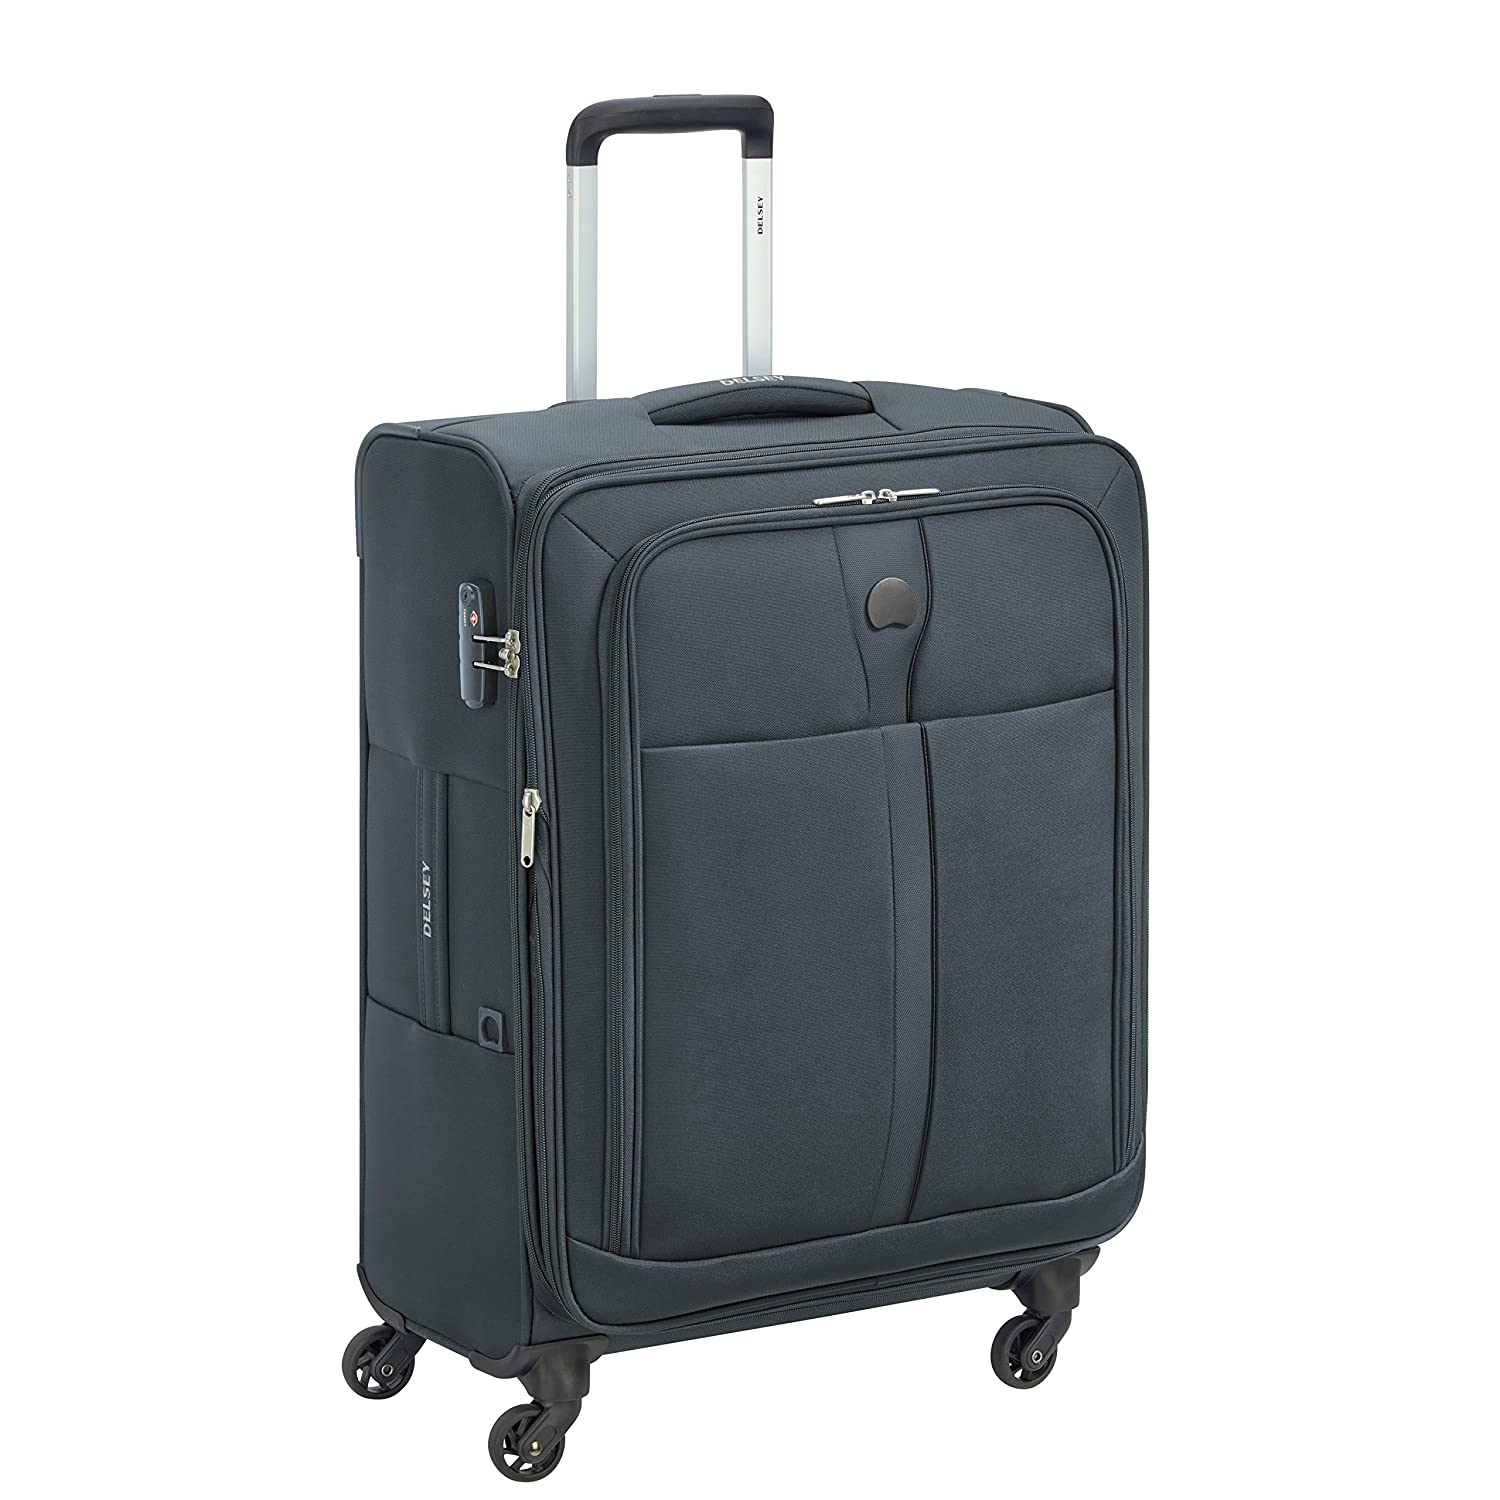 DELSEY Polyester 62 cms Anthracite Softsided Check-in Luggage (MALOTI)